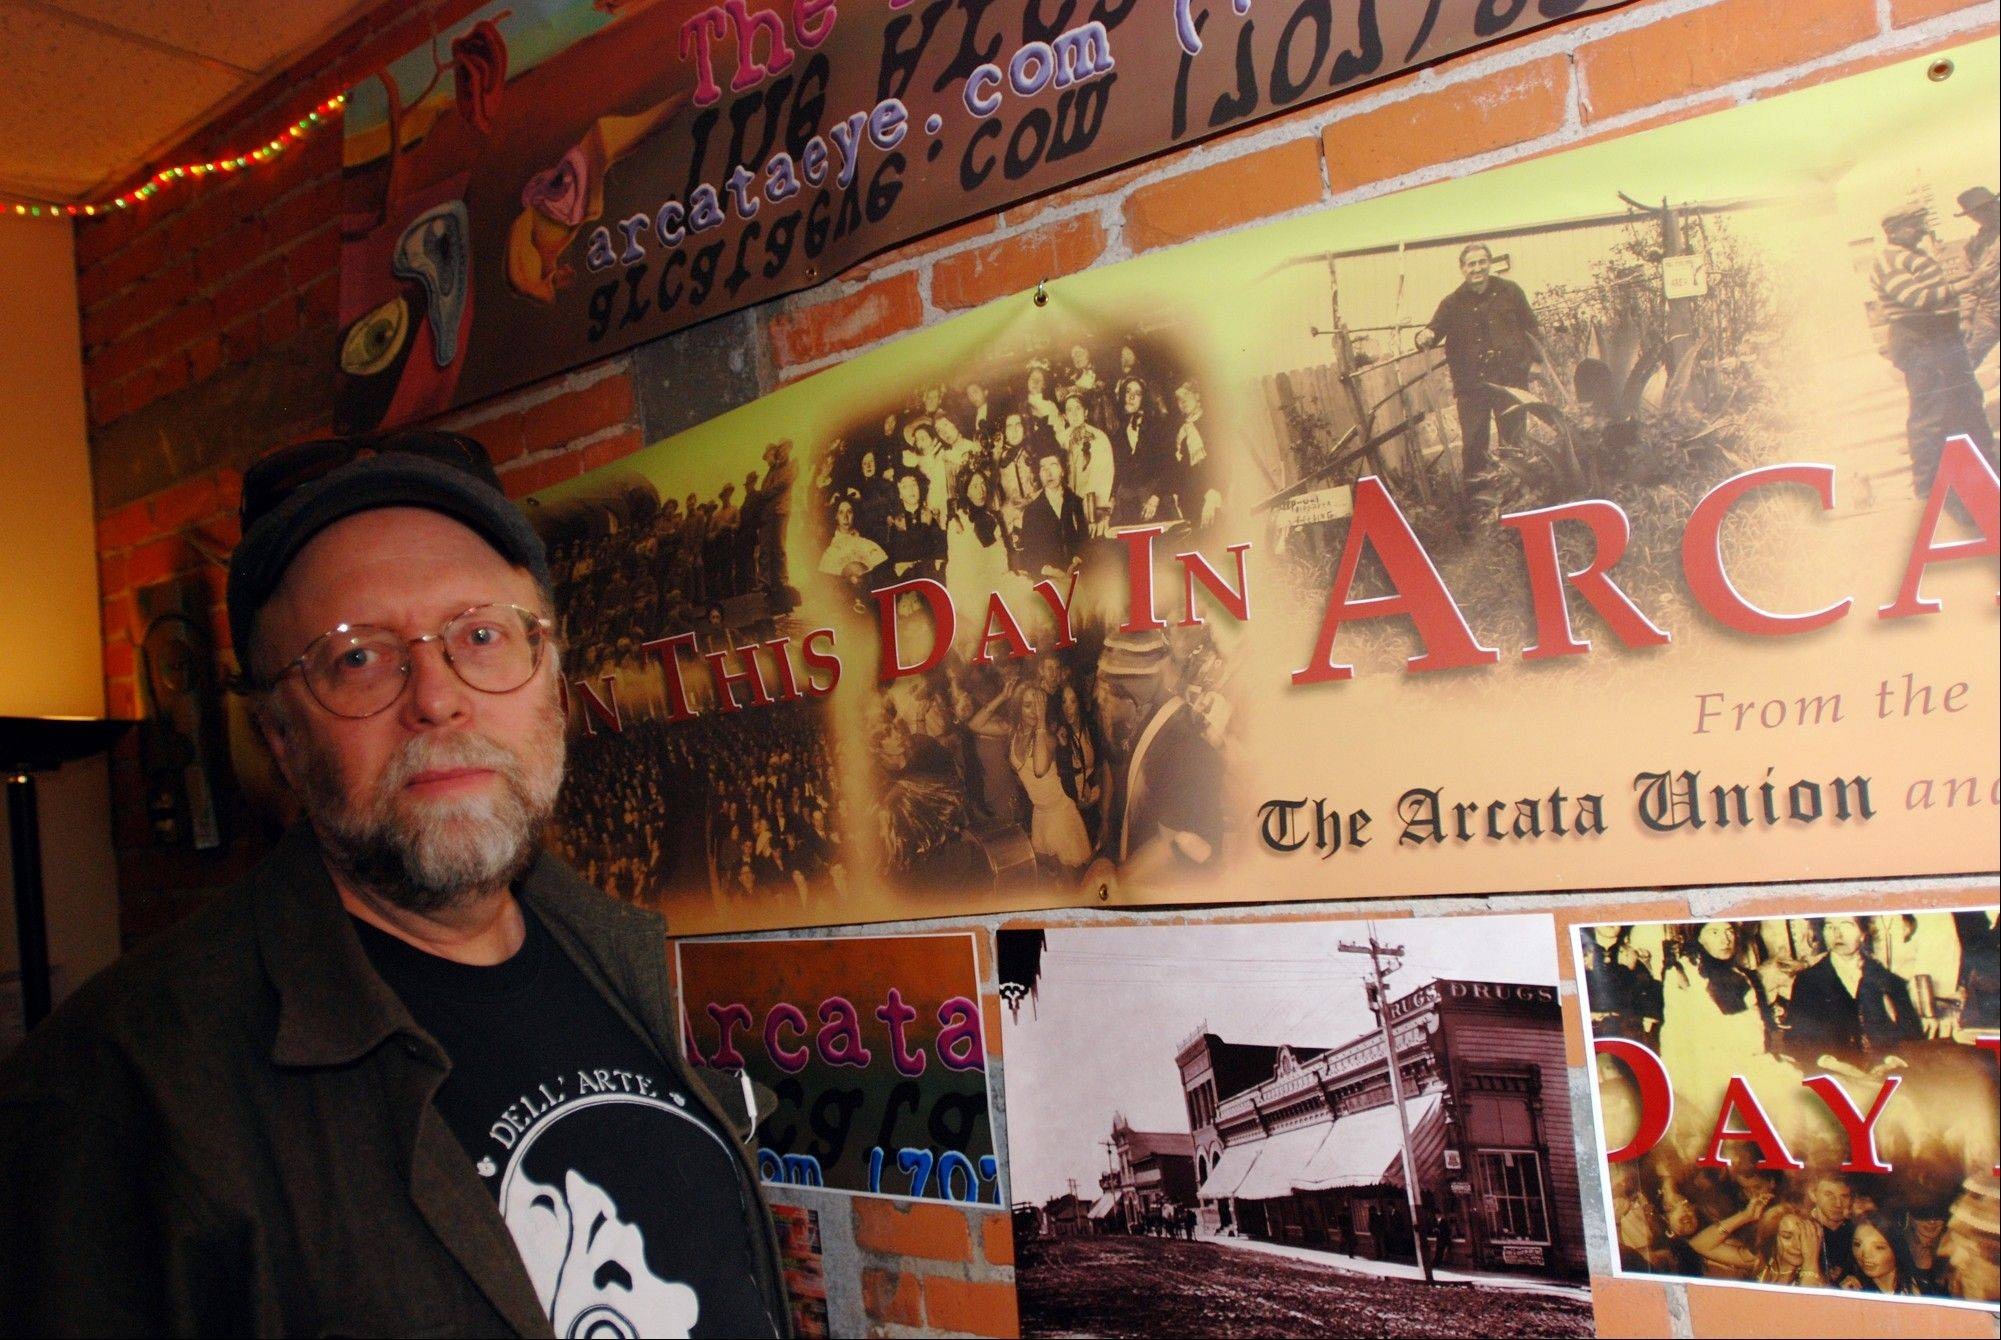 Kevin Hoover, editor of the Arcata Eye newspaper, in his office in Arcata, Calif. Hoover says the proliferation of industrial-level indoor marijuana growing operations has ruined neighborhoods.